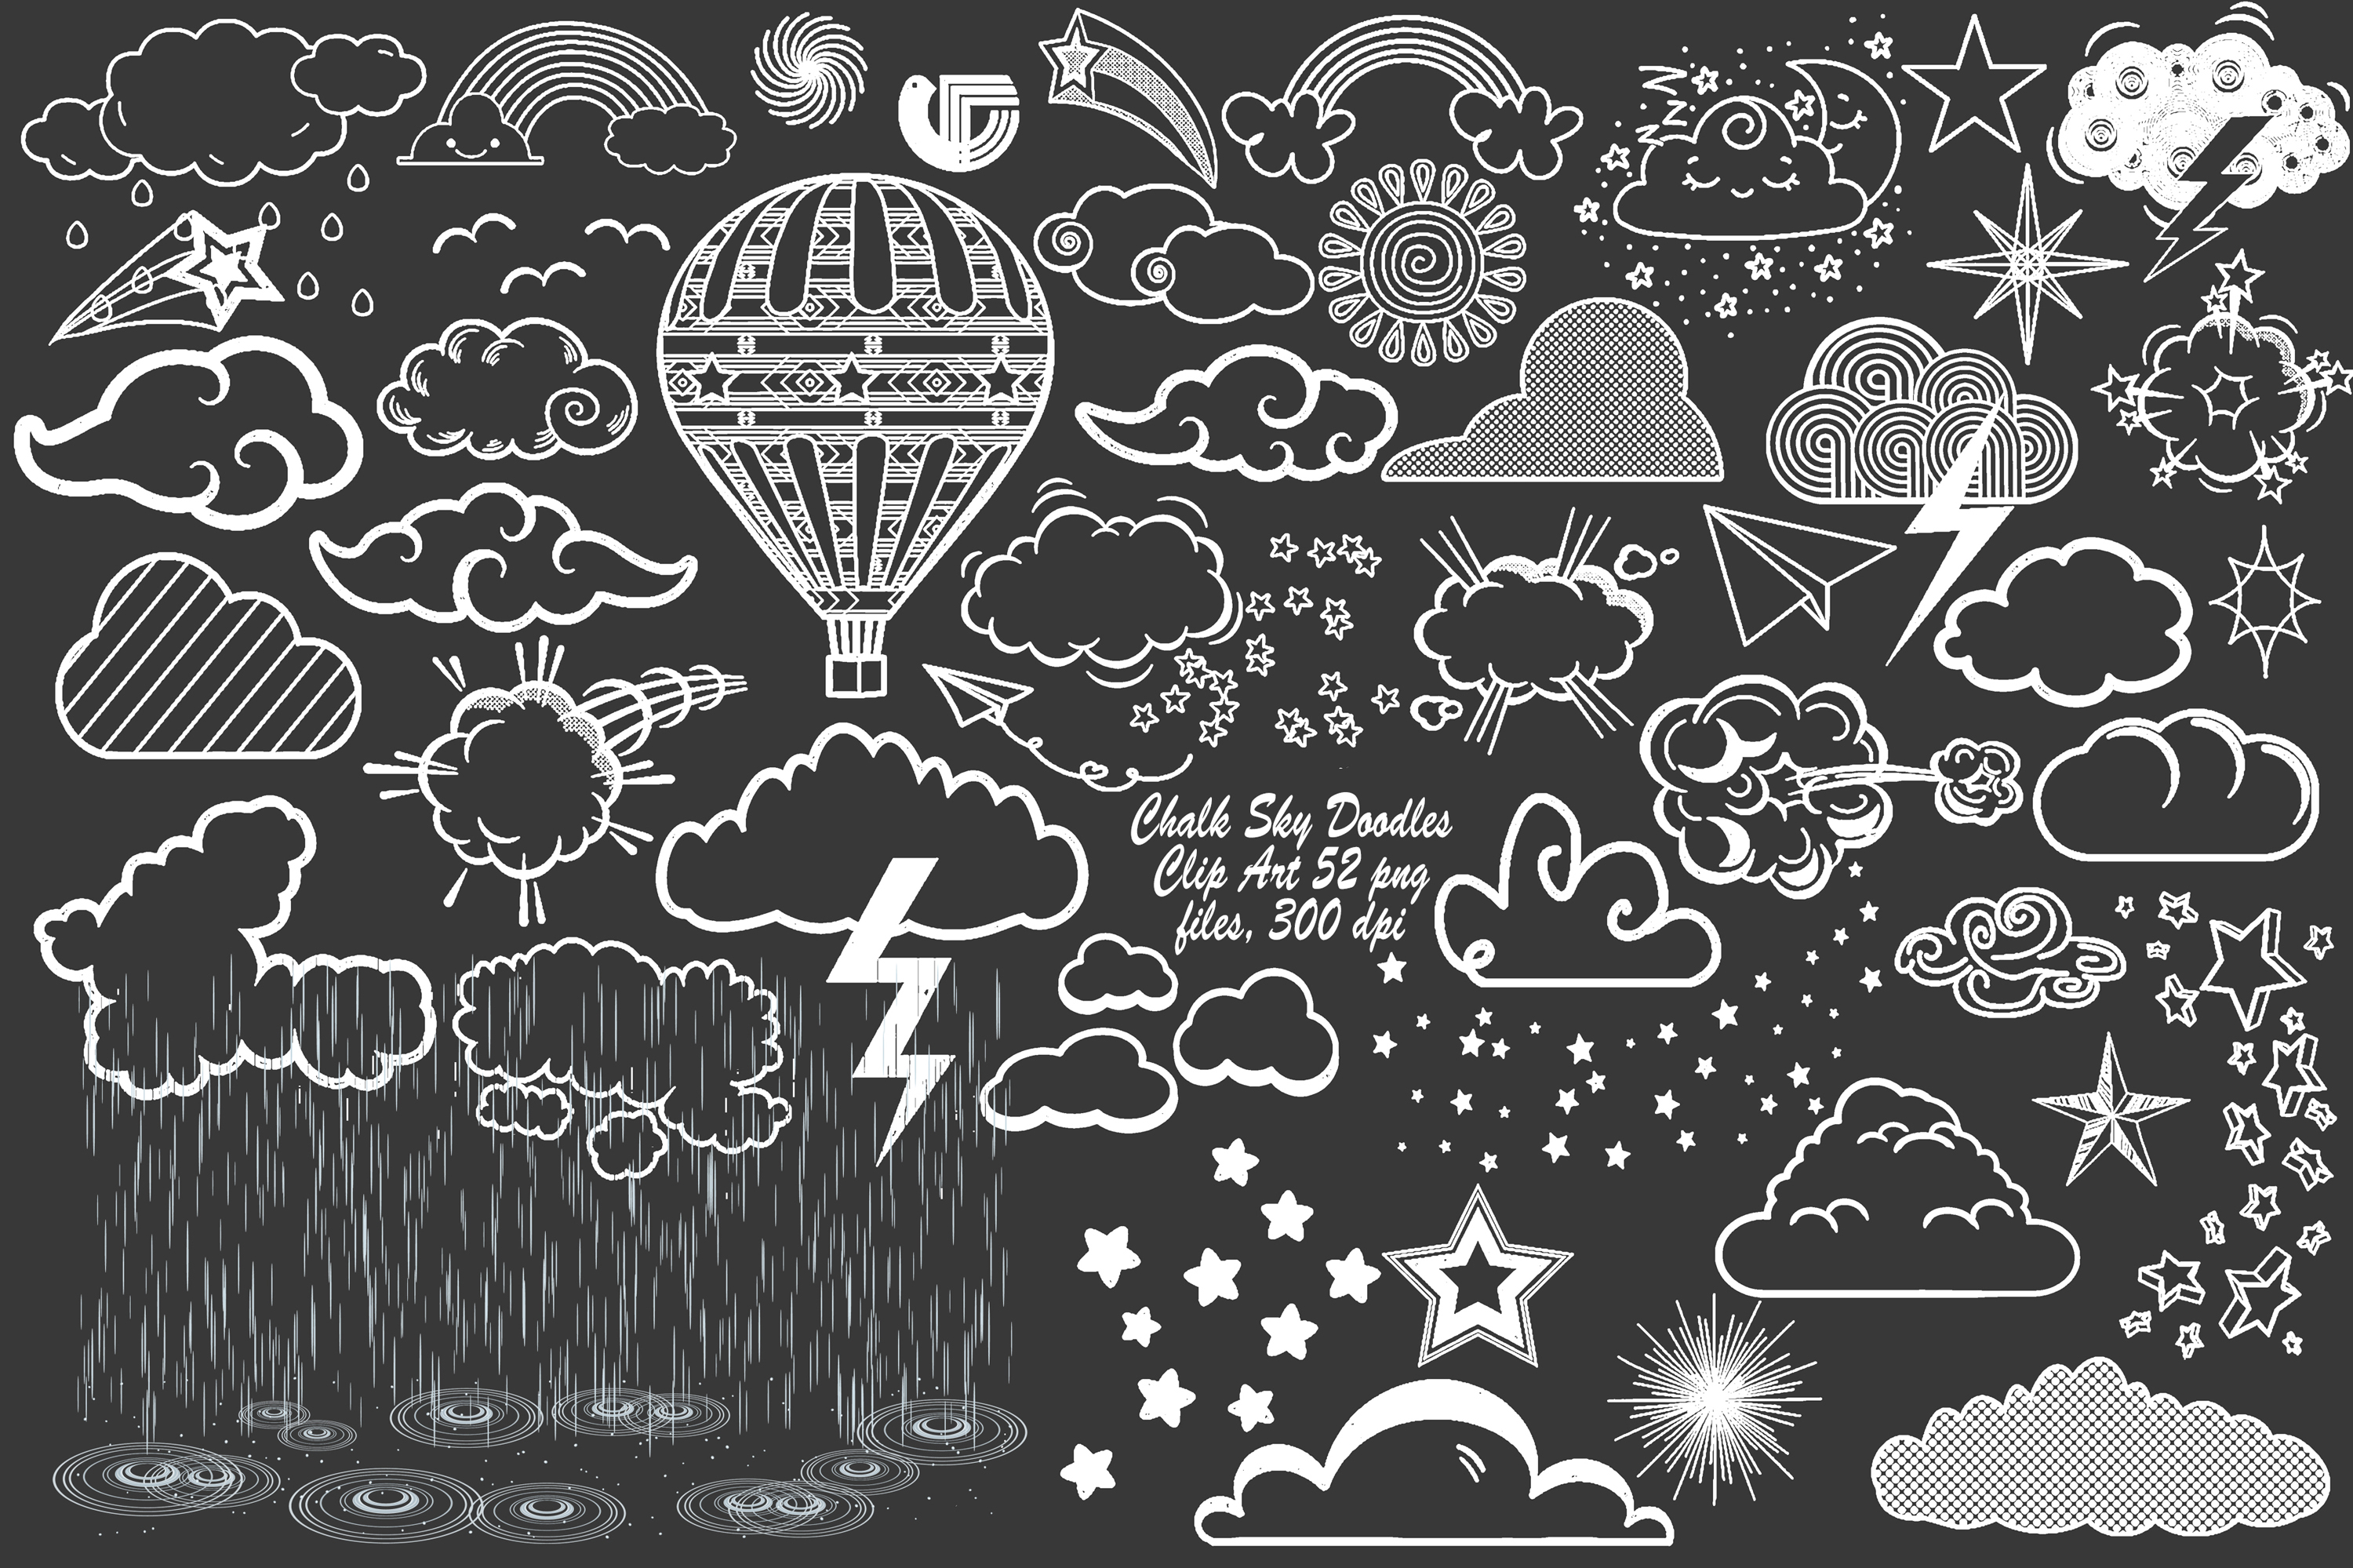 Chalk Sky Doodles and Rain Overlay Clip Art.